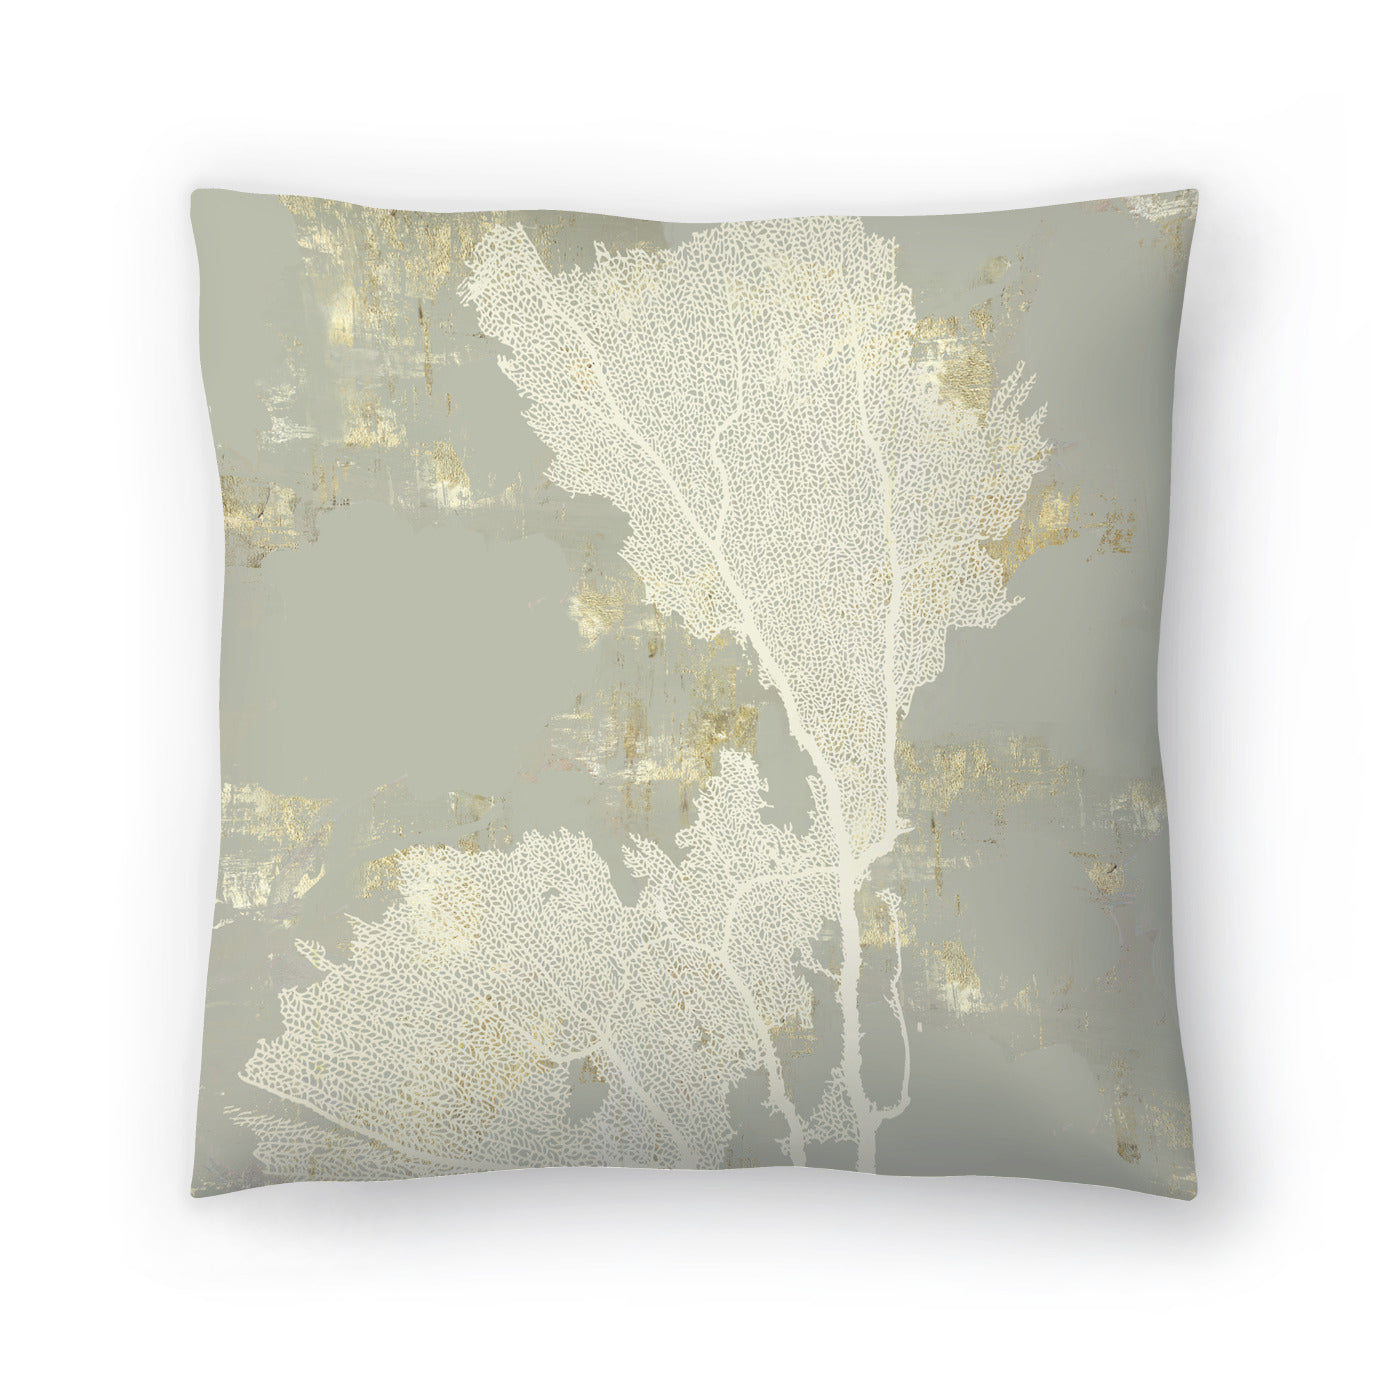 Sea Coral Ii by PI Creative Art Decorative Pillow - Decorative Pillow - Americanflat